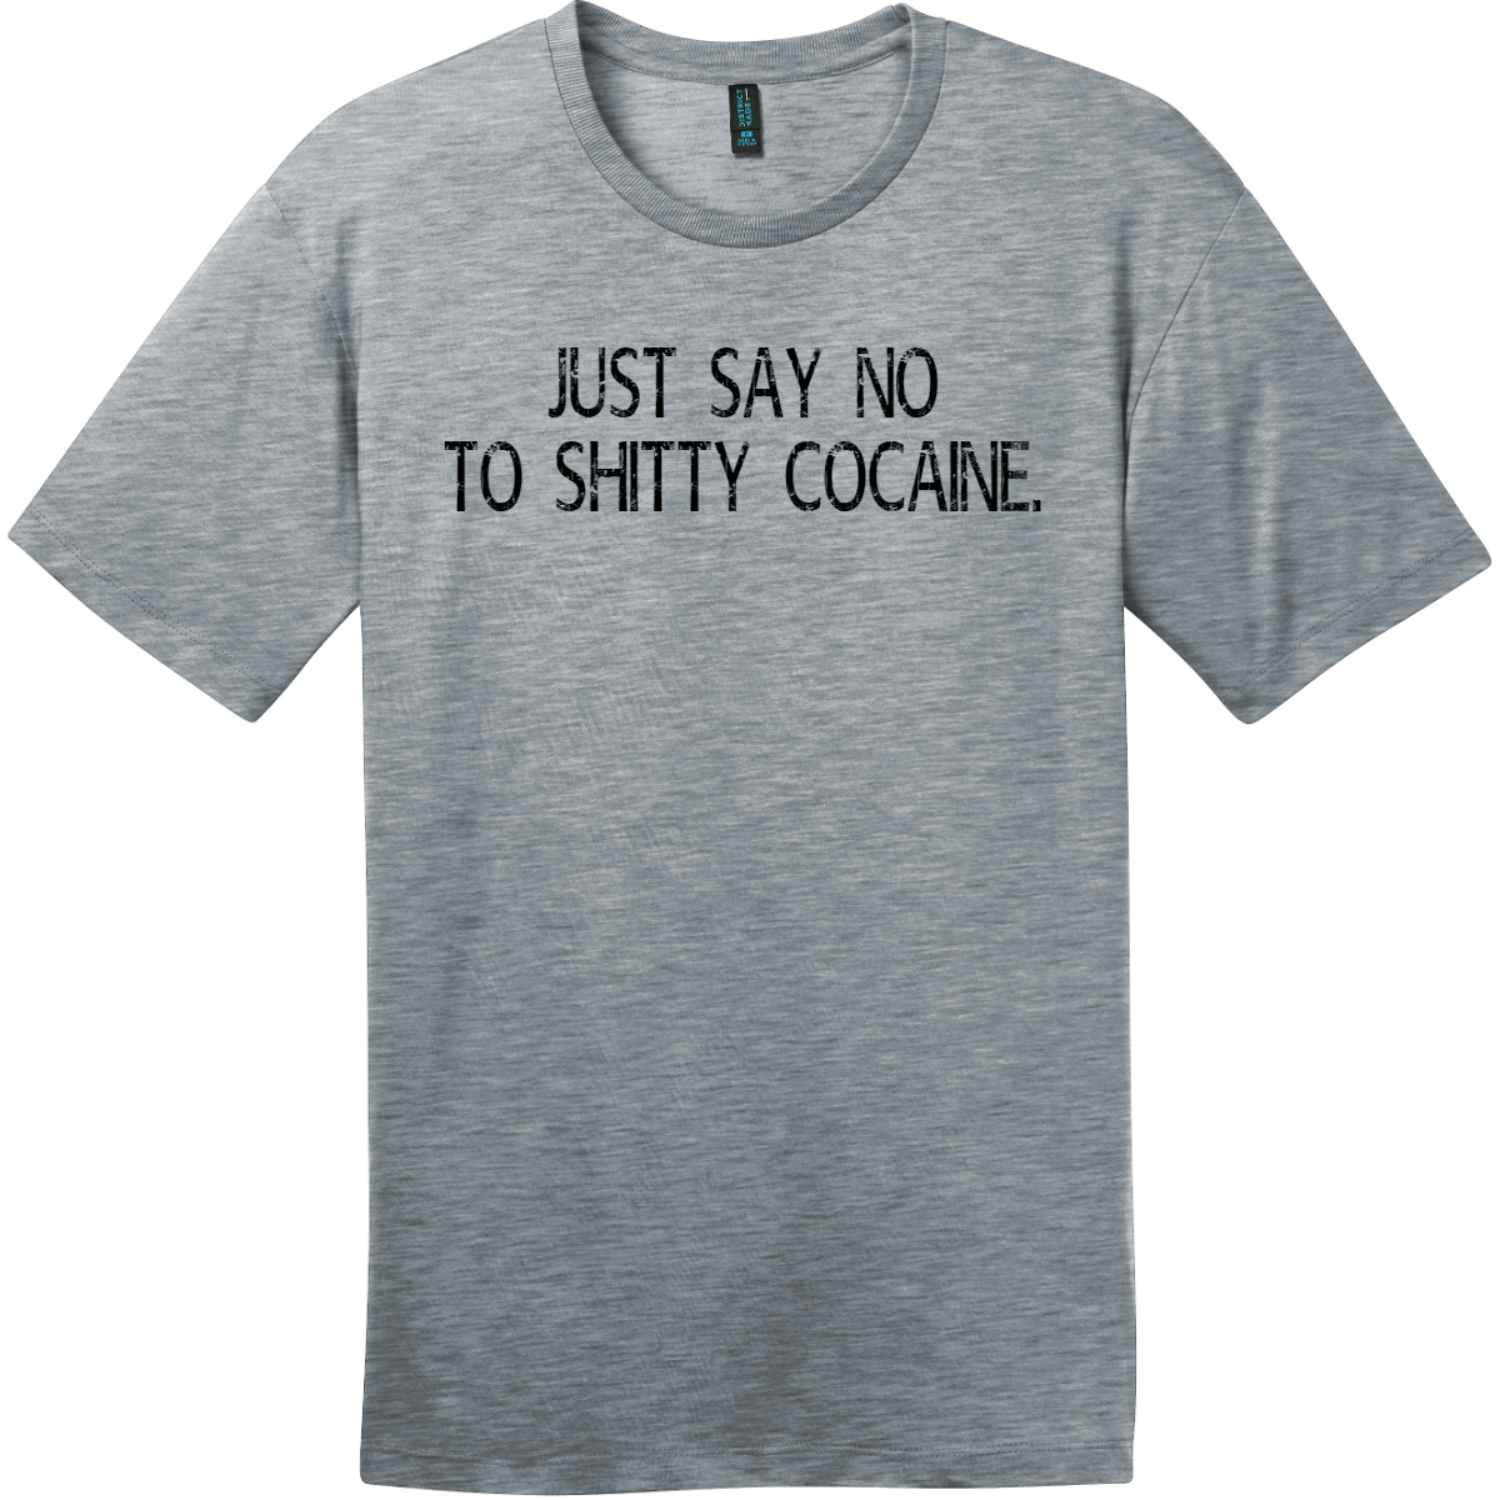 Just Say No To Shitty Cocaine T-Shirt Heathered Steel District Perfect Weight Tee DT104